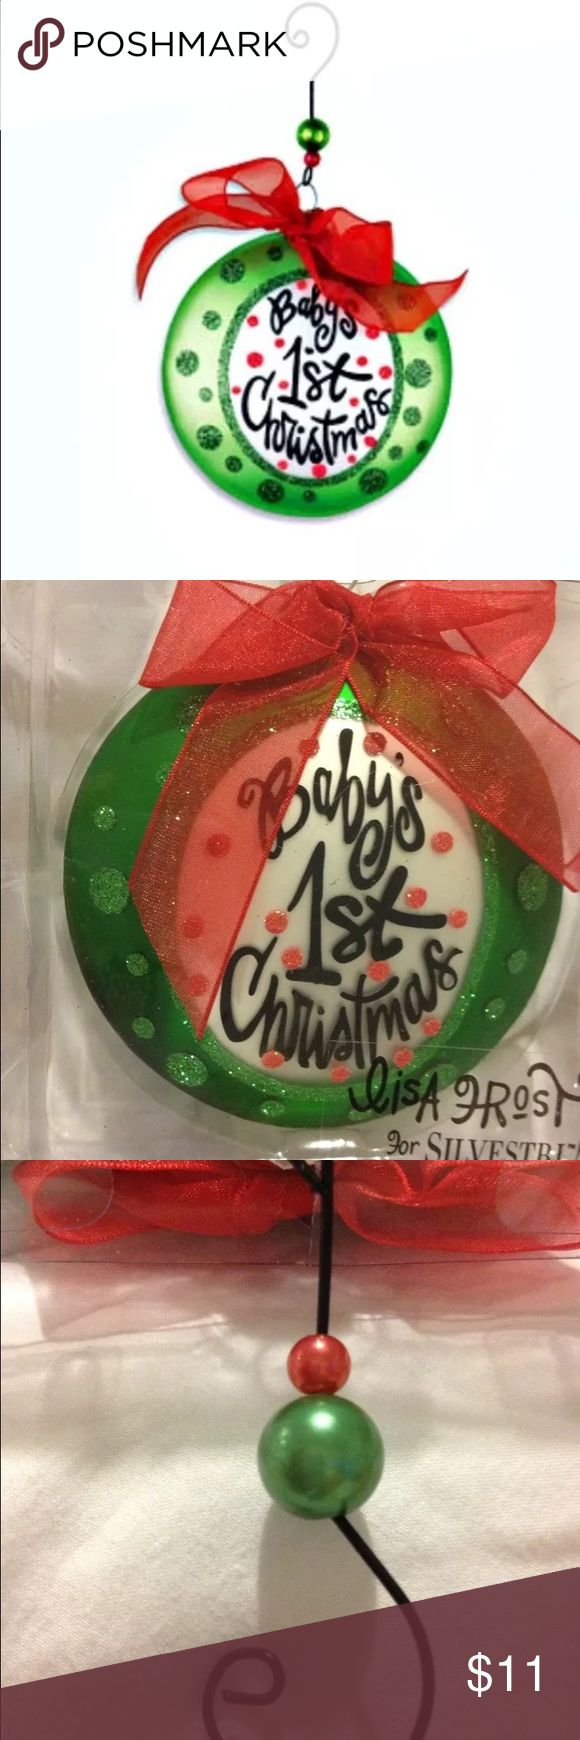 Lisa Frost Baby's 1st Xmas hand-painted ornament BRAND NEW in BRAND NEW BOX! GIFT GIVING READY!  Hand-painted glass ornament 4 baby's 1st tree from Lisa Frost collection. Unusual & attention getting disc shape, the design & artwork has Frost's signature style. Glitter accents, deep holiday green circular motif w/white center w/Baby's 1st Christmas whimsically written in blk w/red dot glitter accents! Adorable!  Even hook unusual w/red & green bead accent &clever shape. Tied festively w/red…